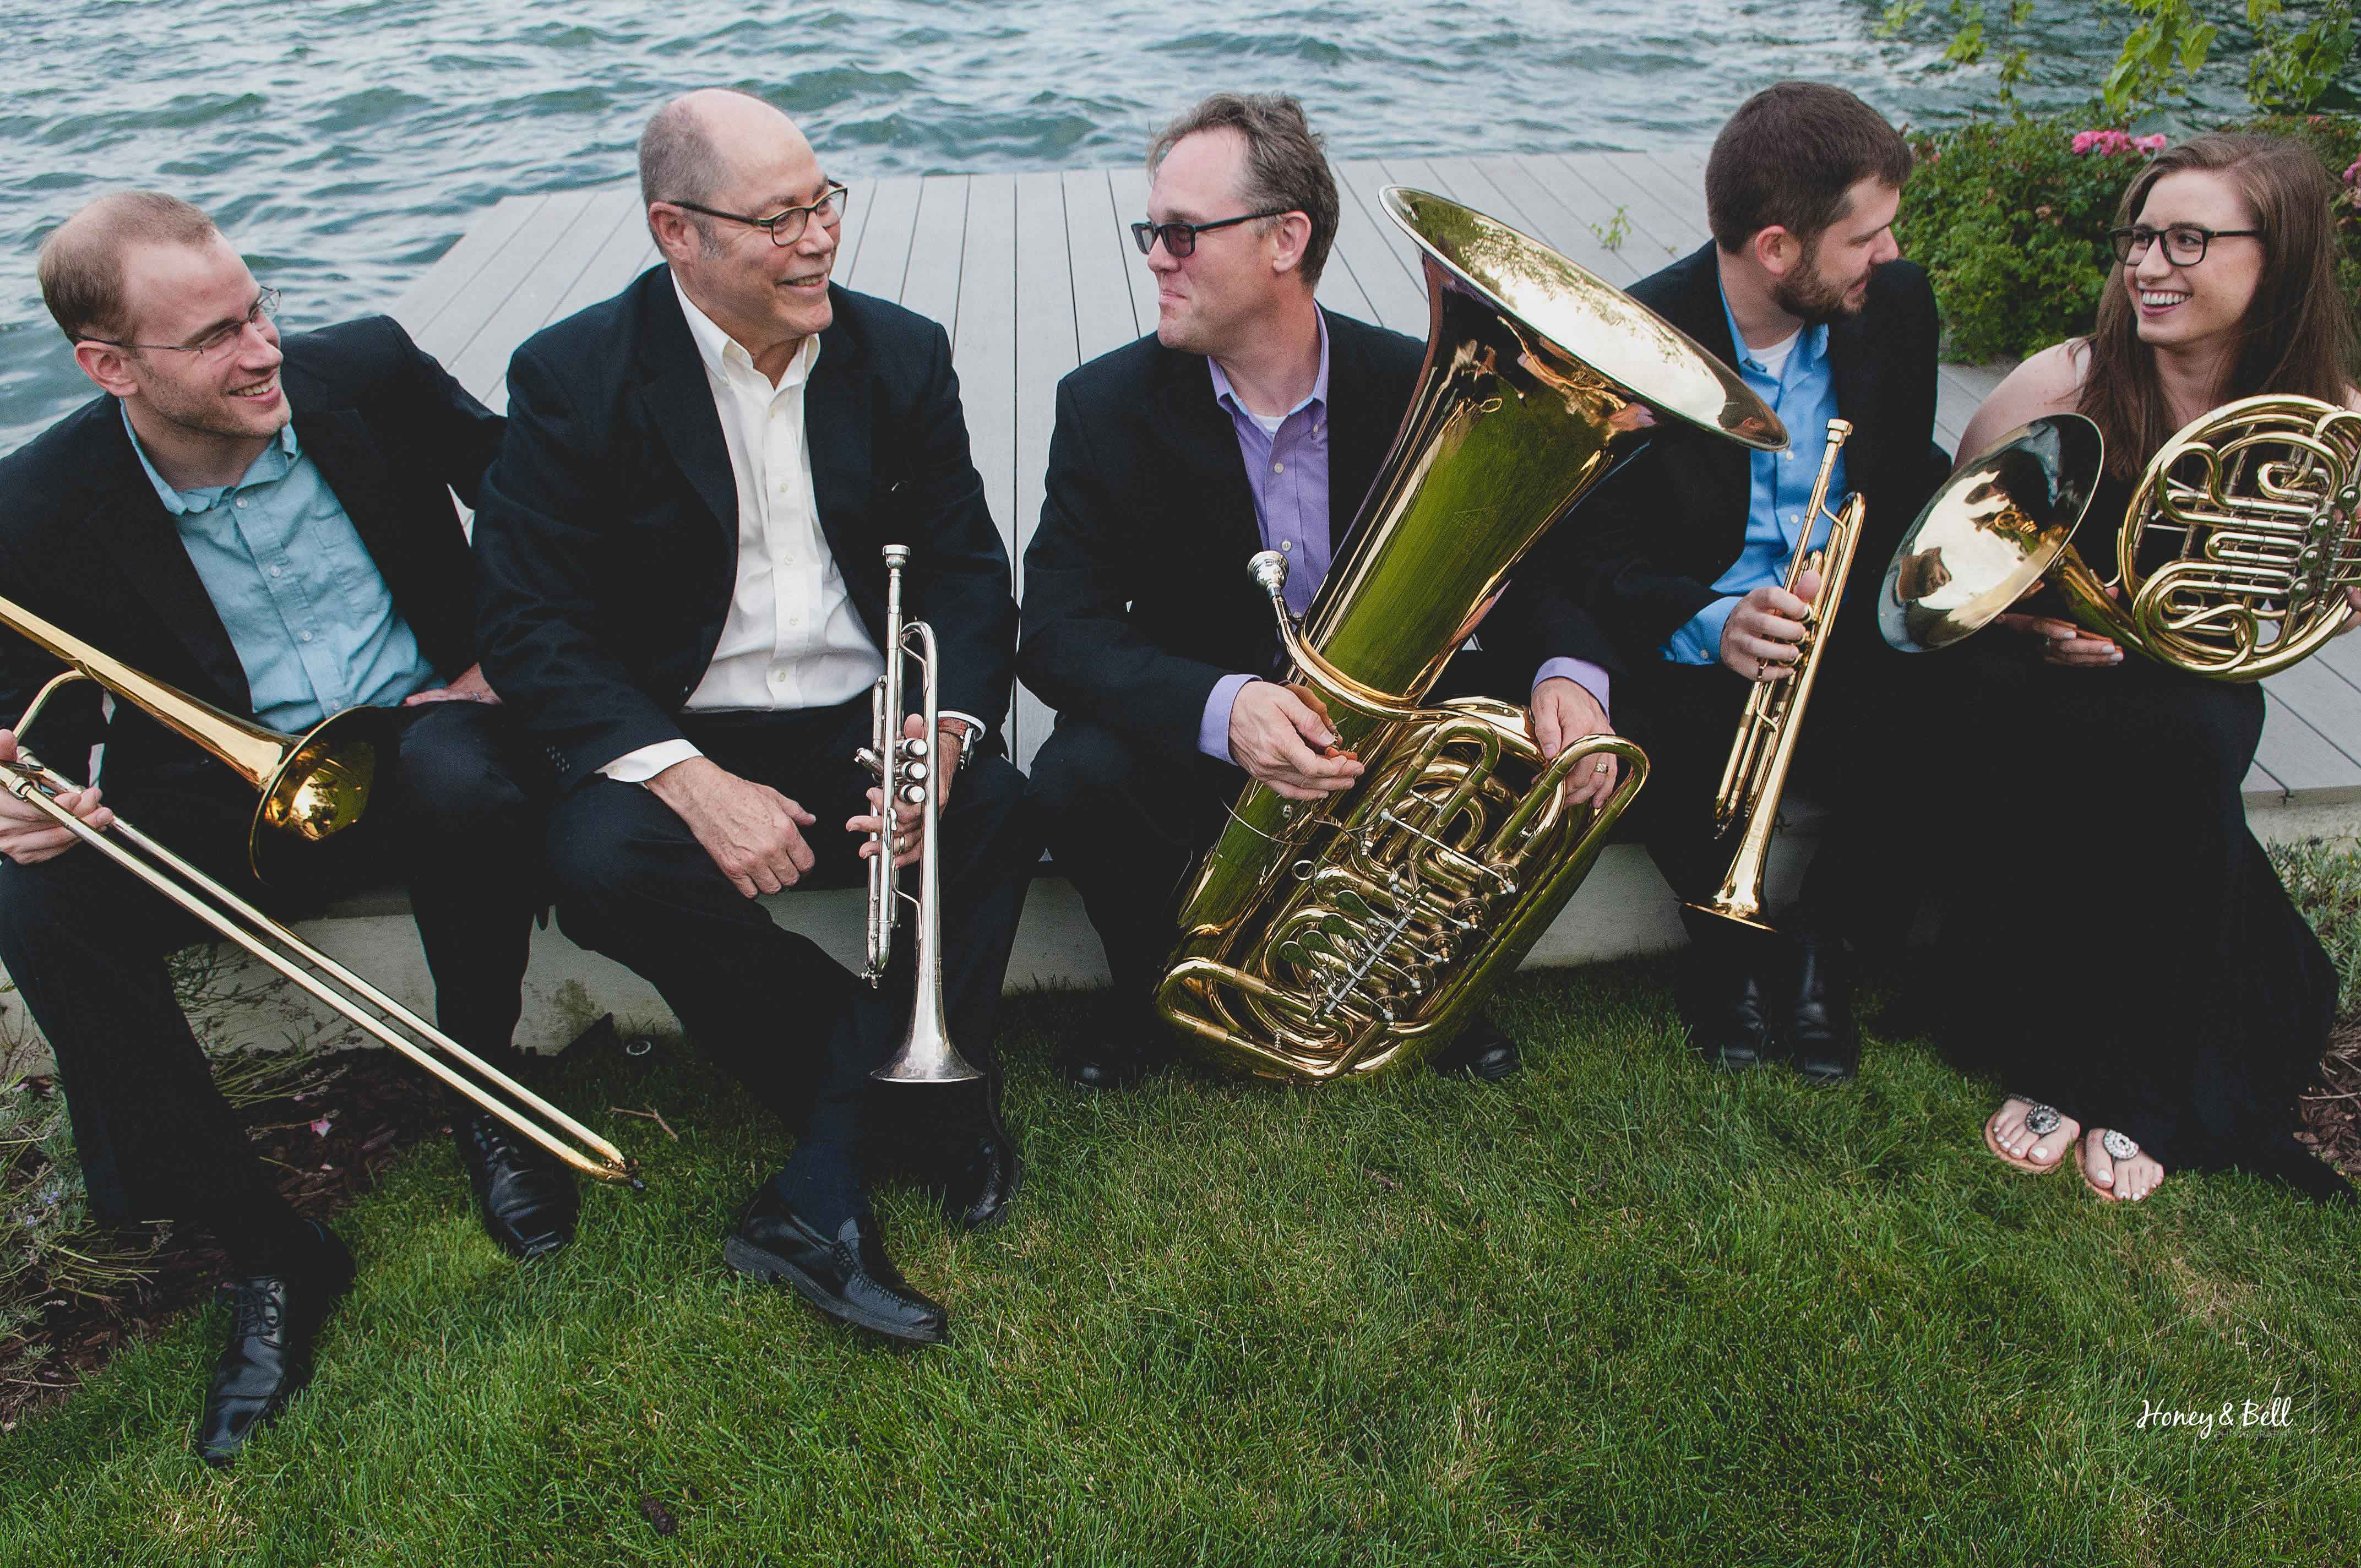 north-of-canada-brass-quintet-detroit-michigan-grosse-pointe-band-photographer-10